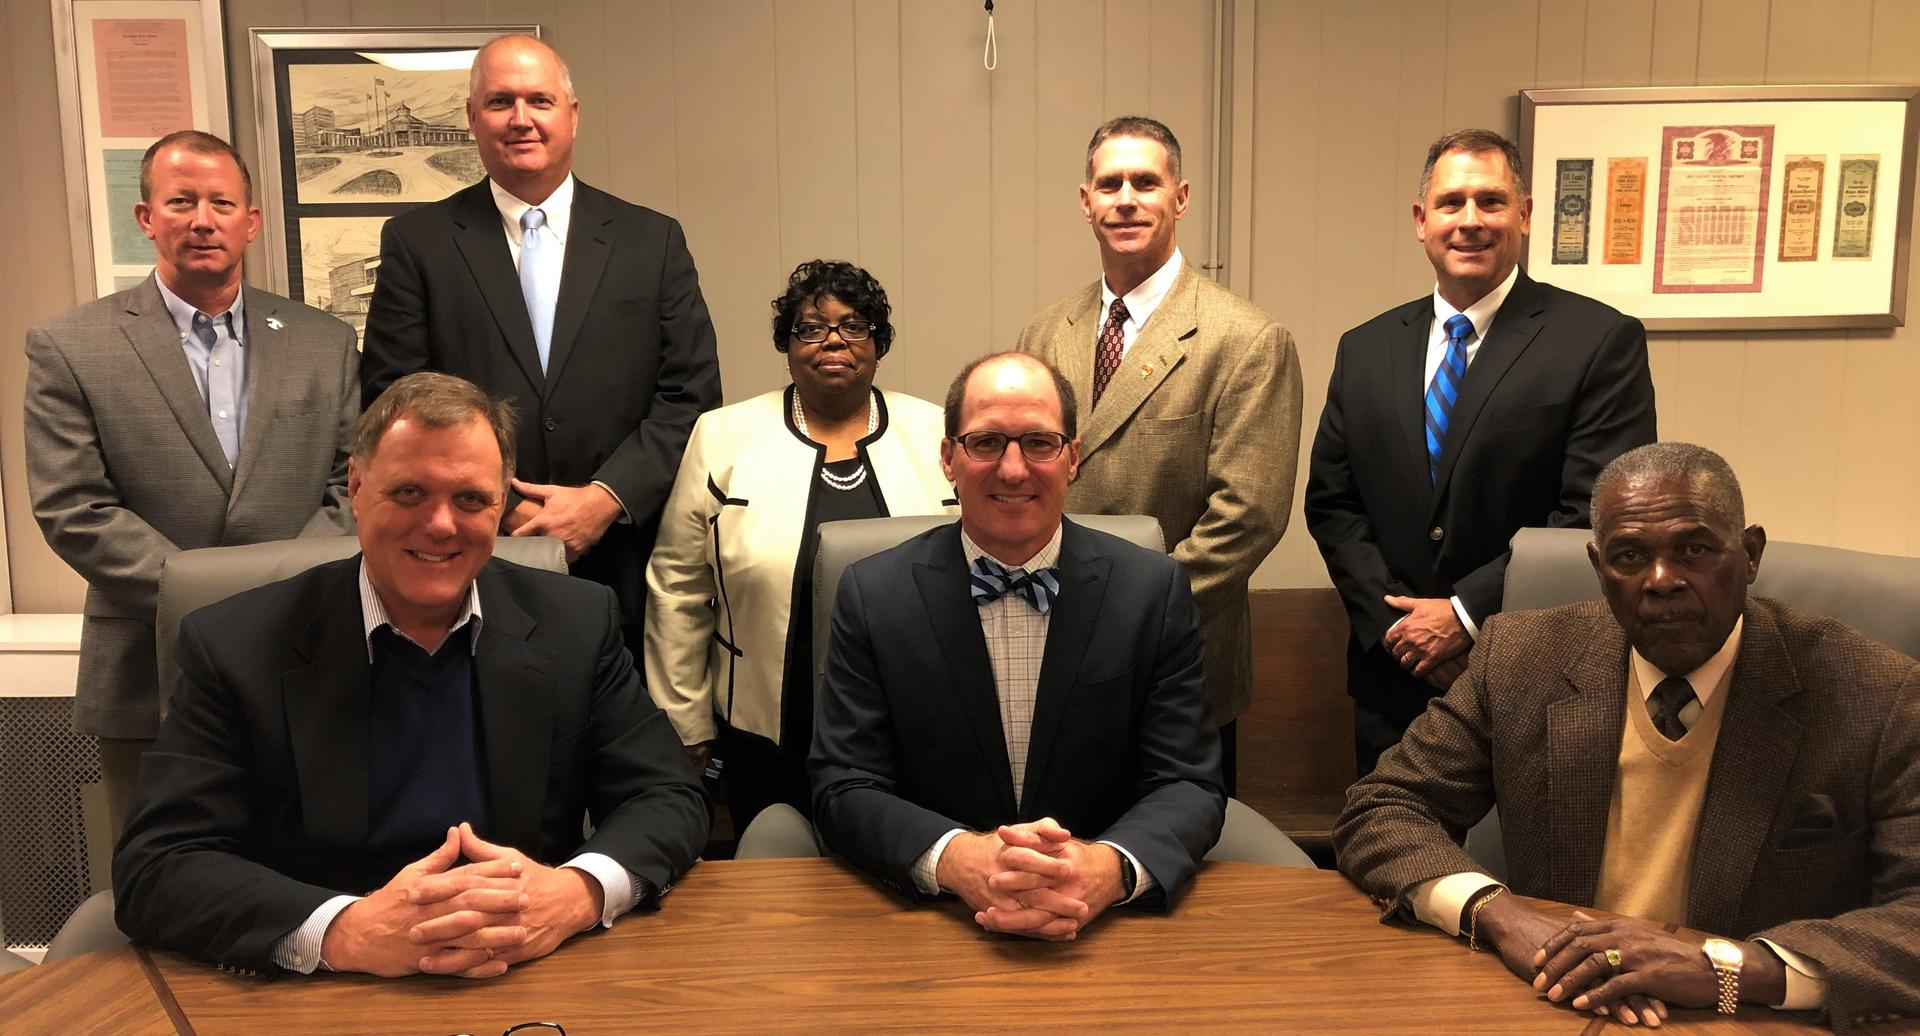 Members of the Tift County Board of Education